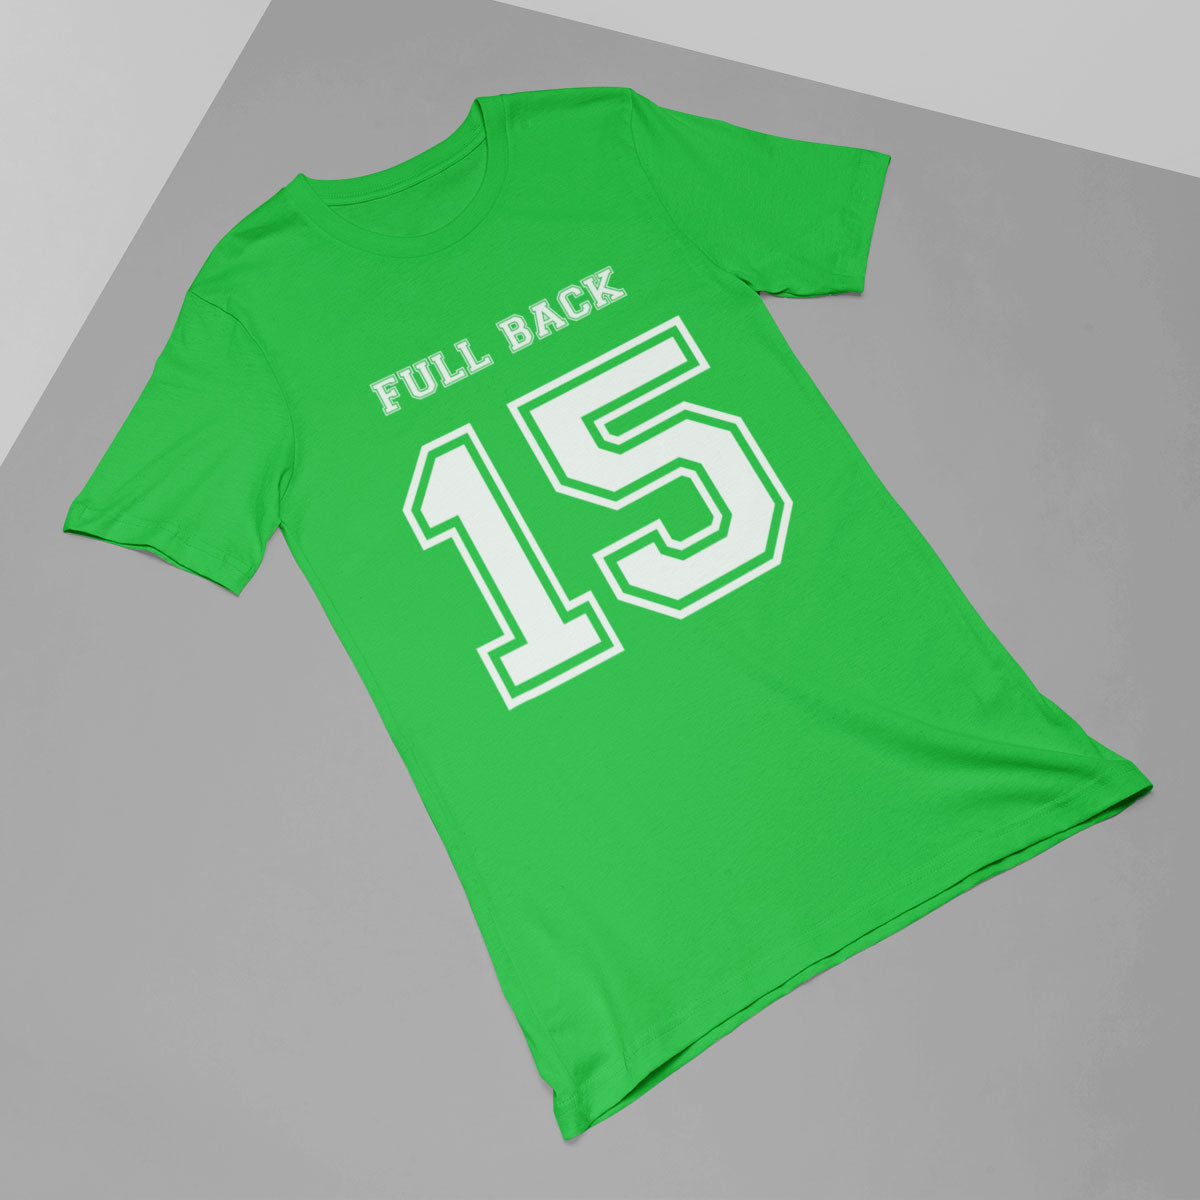 Full Back Number 15 Rugby Tee - First XV rugbystuff.com